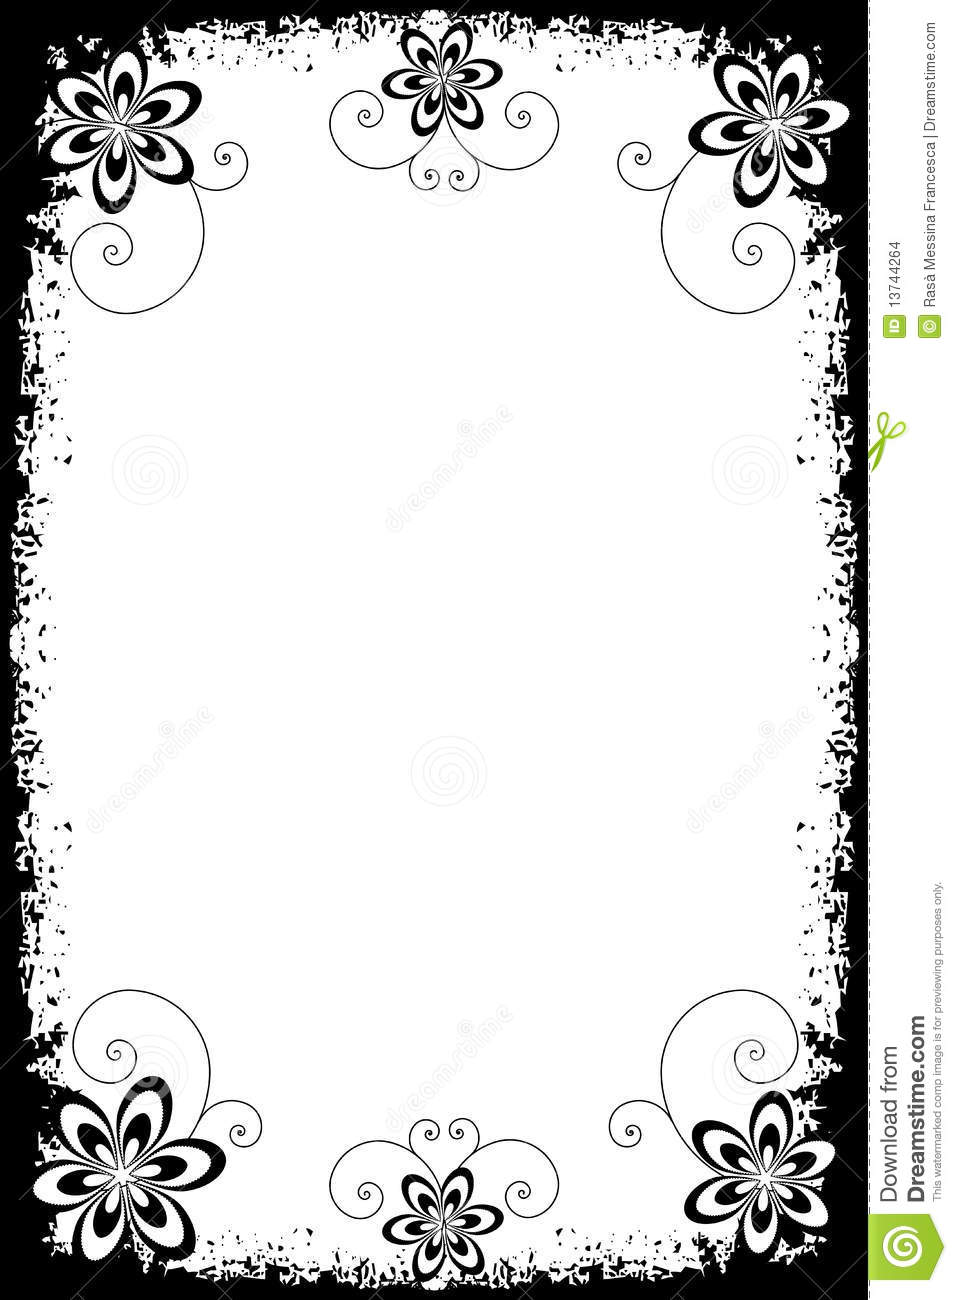 grunge floral borders stock images image 13744264